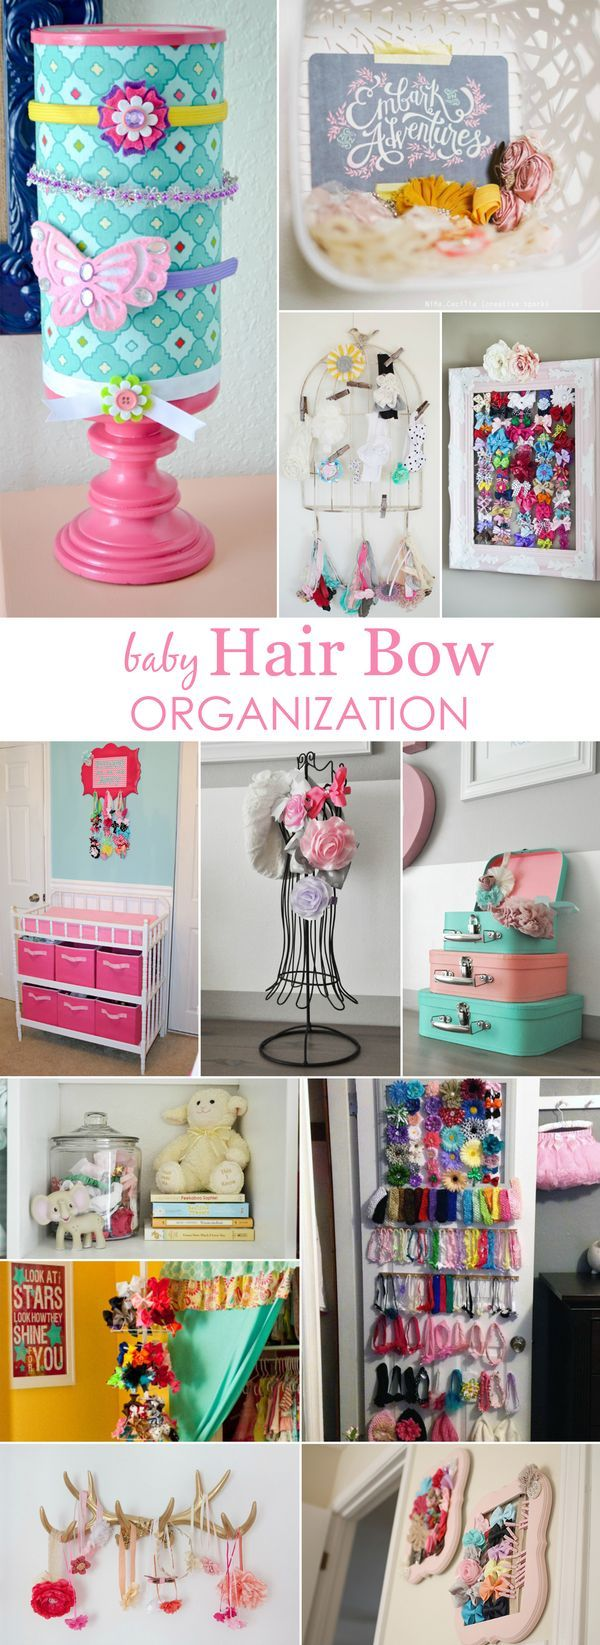 Baby Hair Bow Organization Ideas - Project Nursery